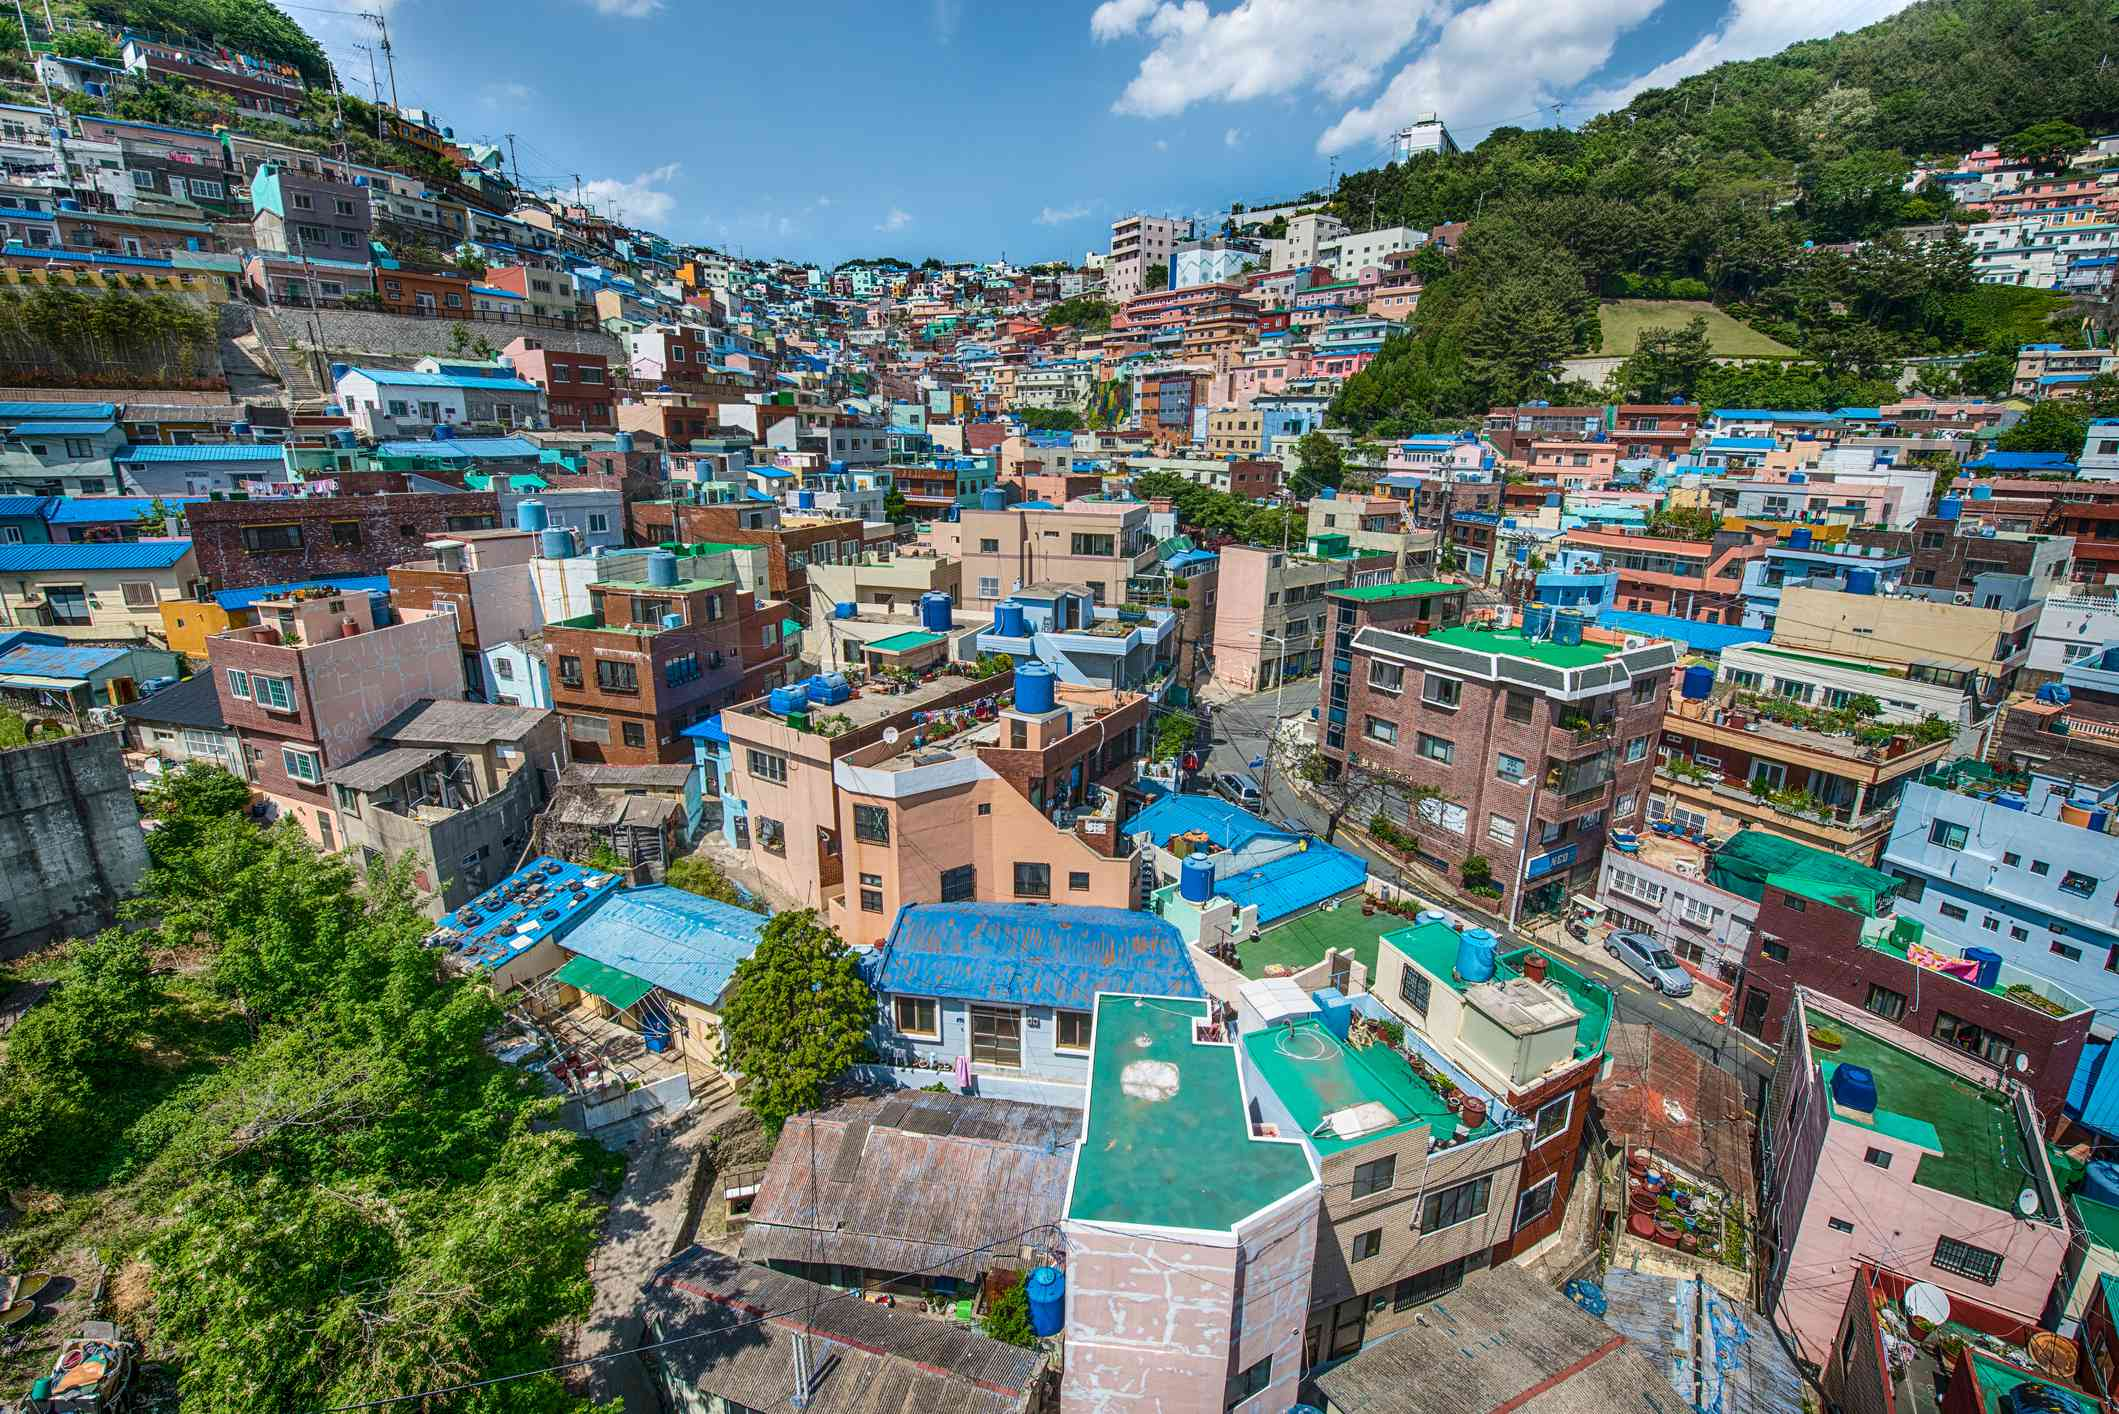 View of the colorful roofs in the Gamcheon residential district, Busan, South Korea